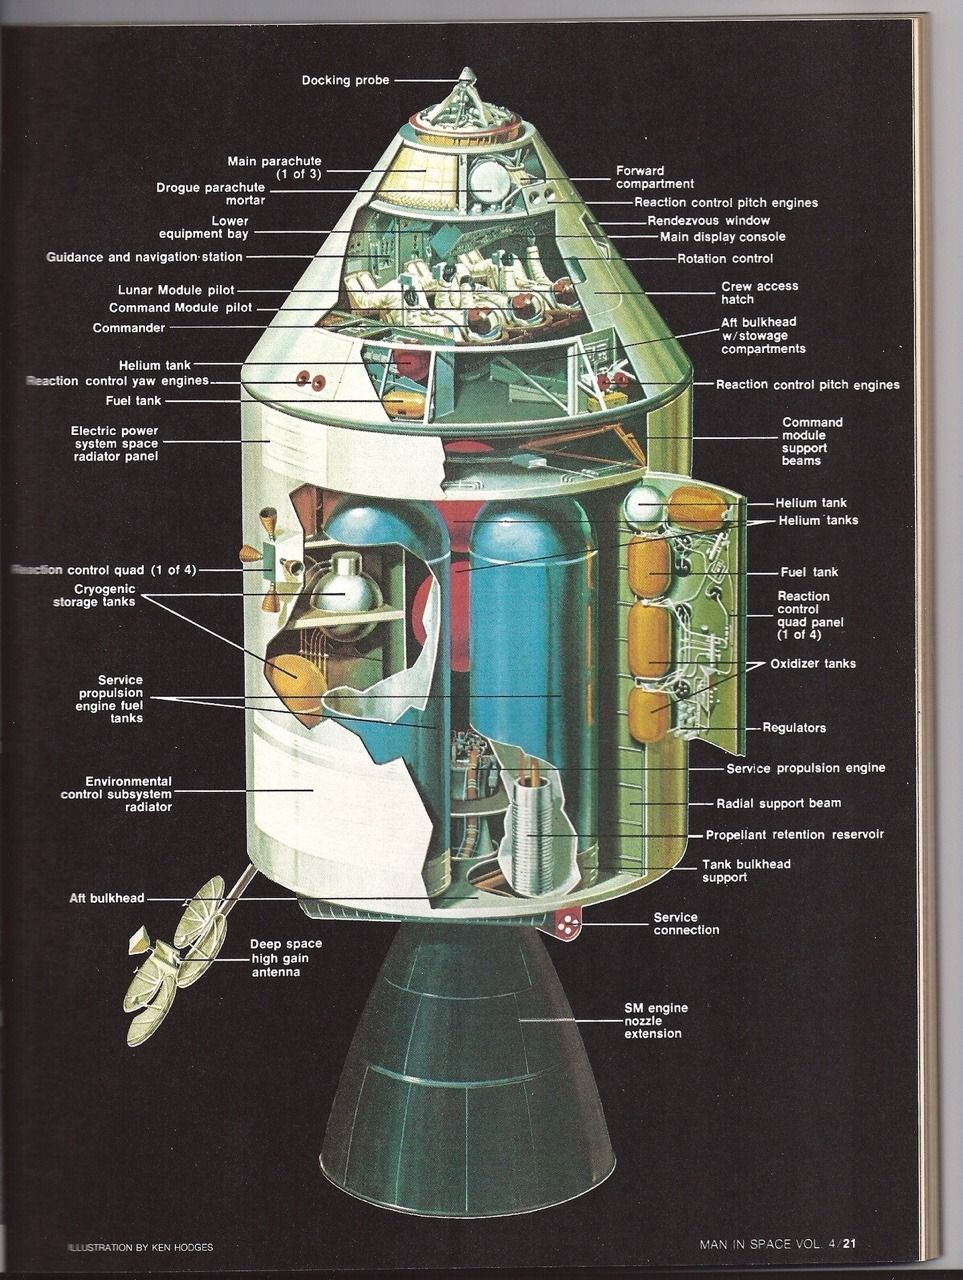 nasa apollo program historical information - photo #4